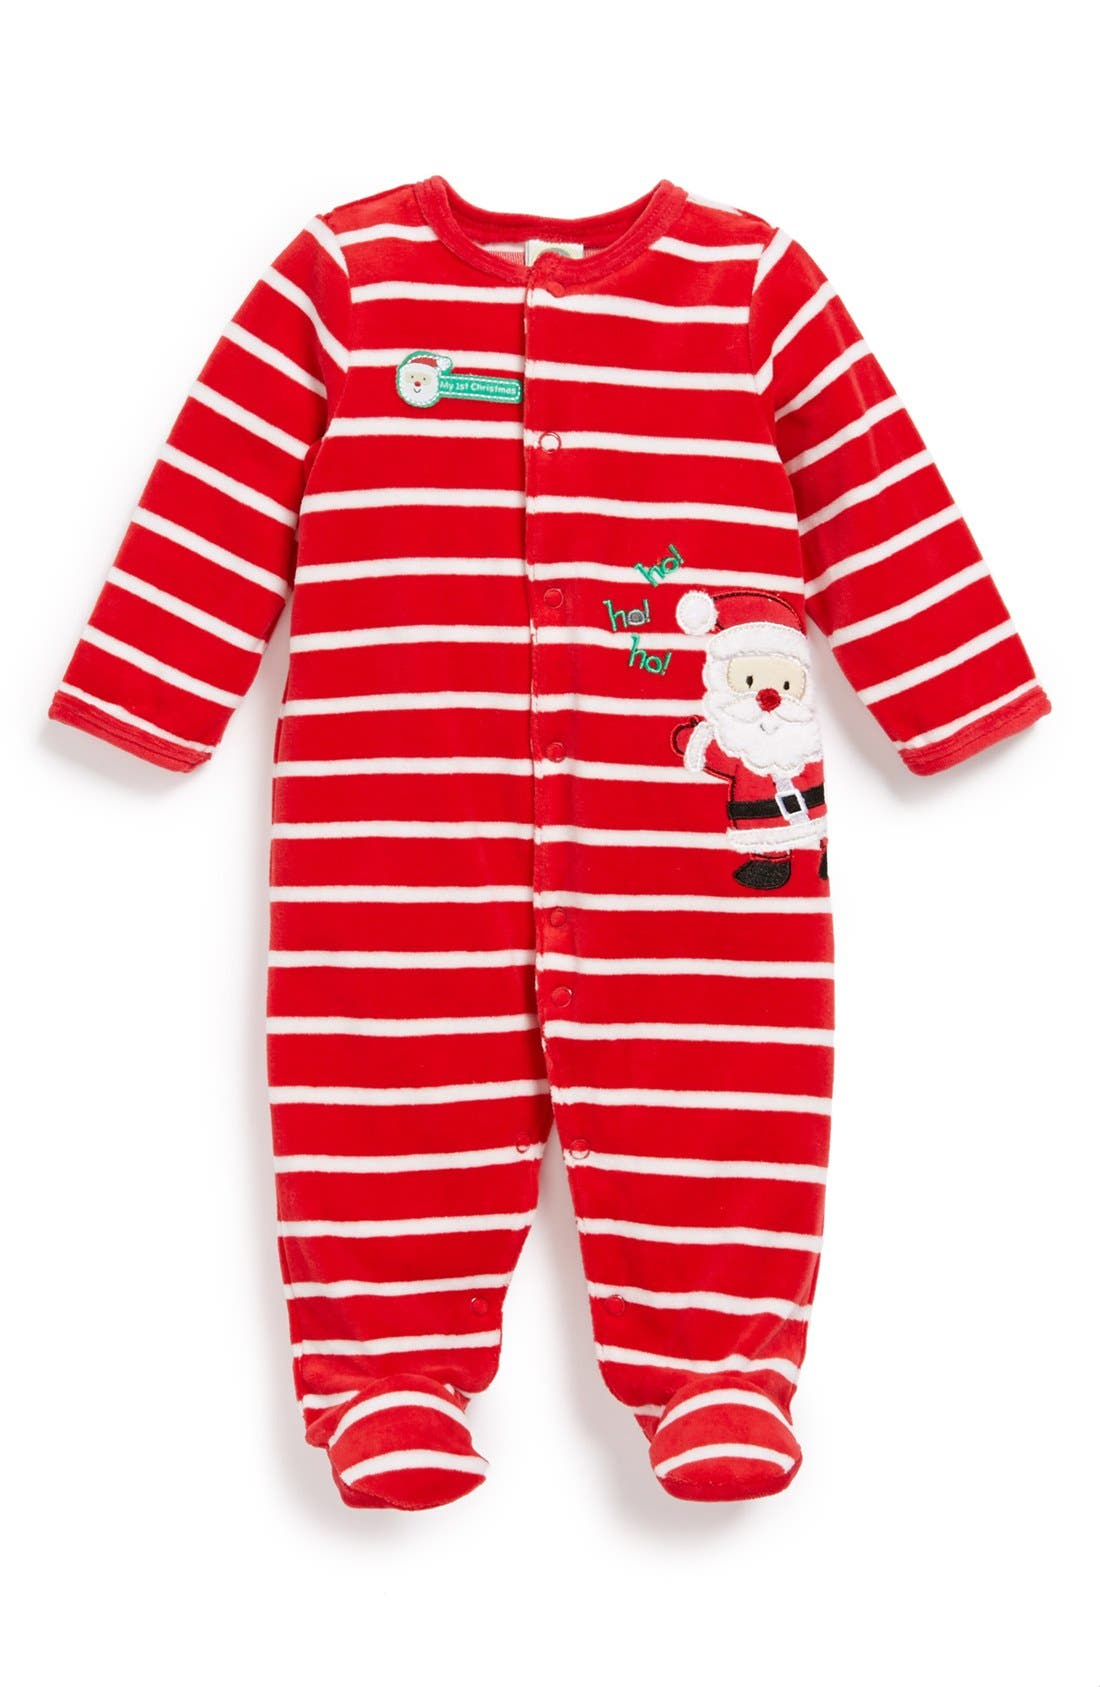 Main Image - Little Me 'First Christmas - Santa' Velour One-Piece (Baby)